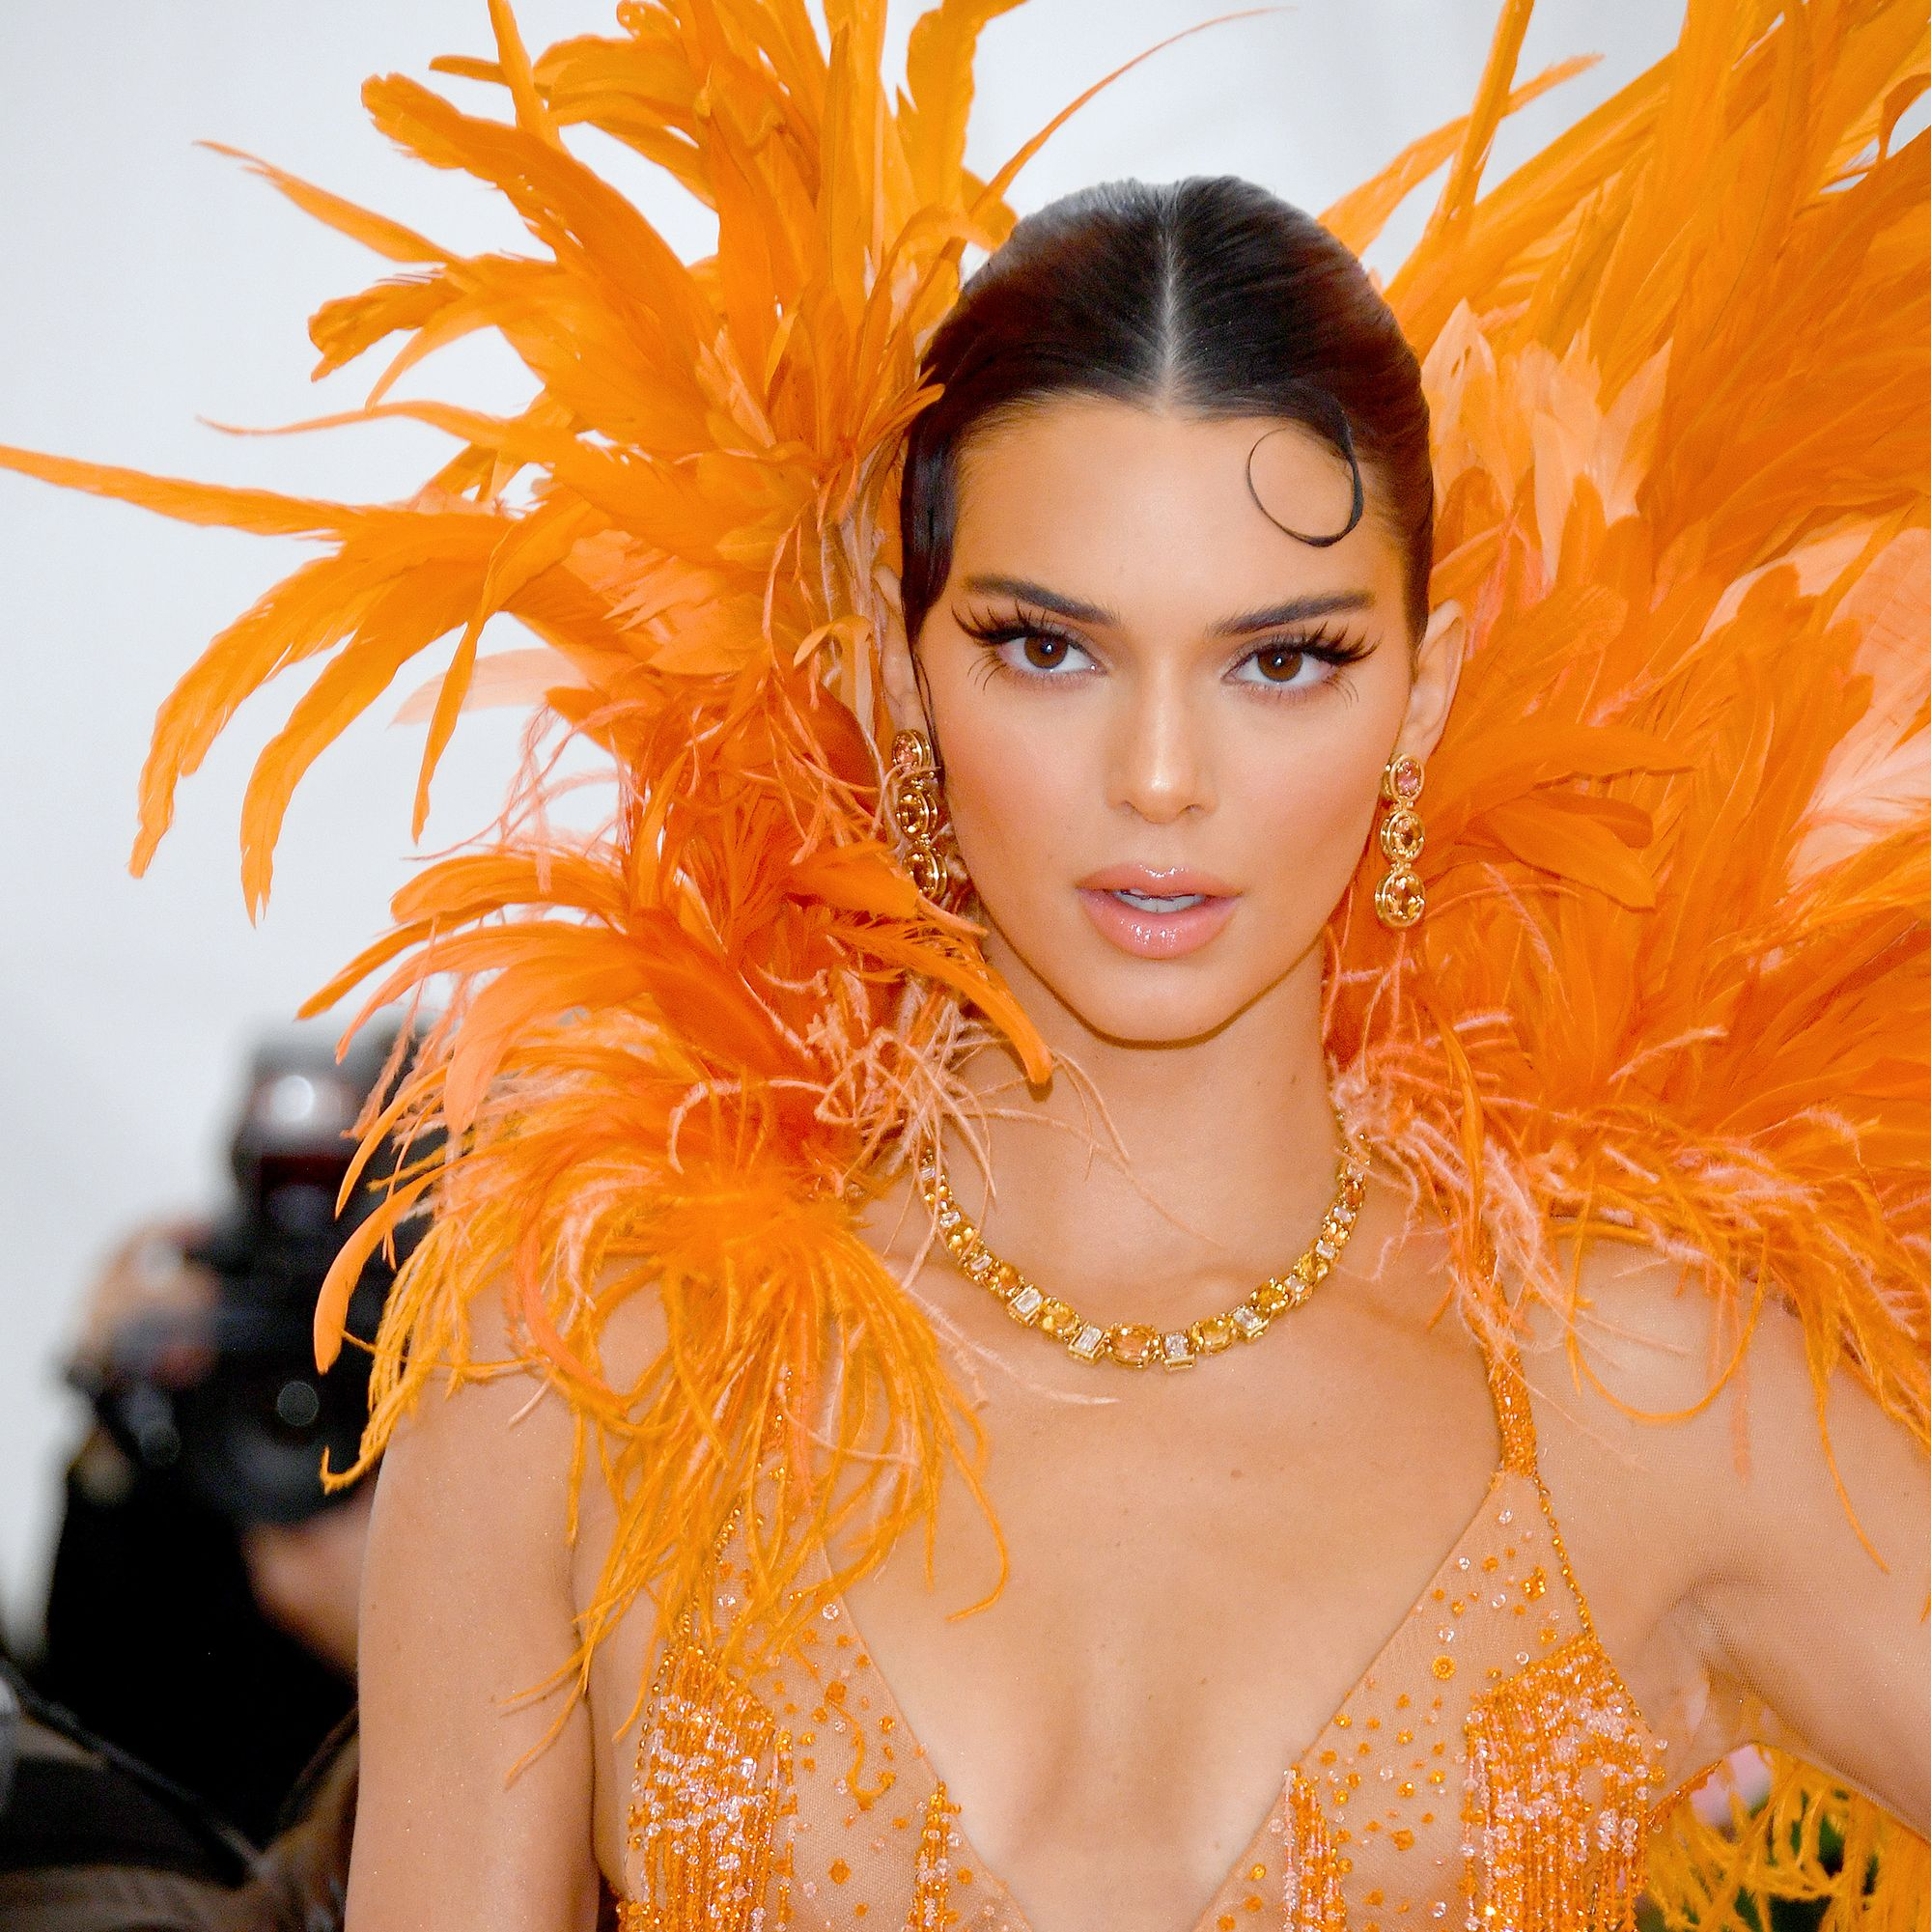 Kendall Jenner Jenner wore her hair slicked back in a chignon (with a tendril carefully curled on her forehead), extra long false lashes, and dewy, plumped up skin.